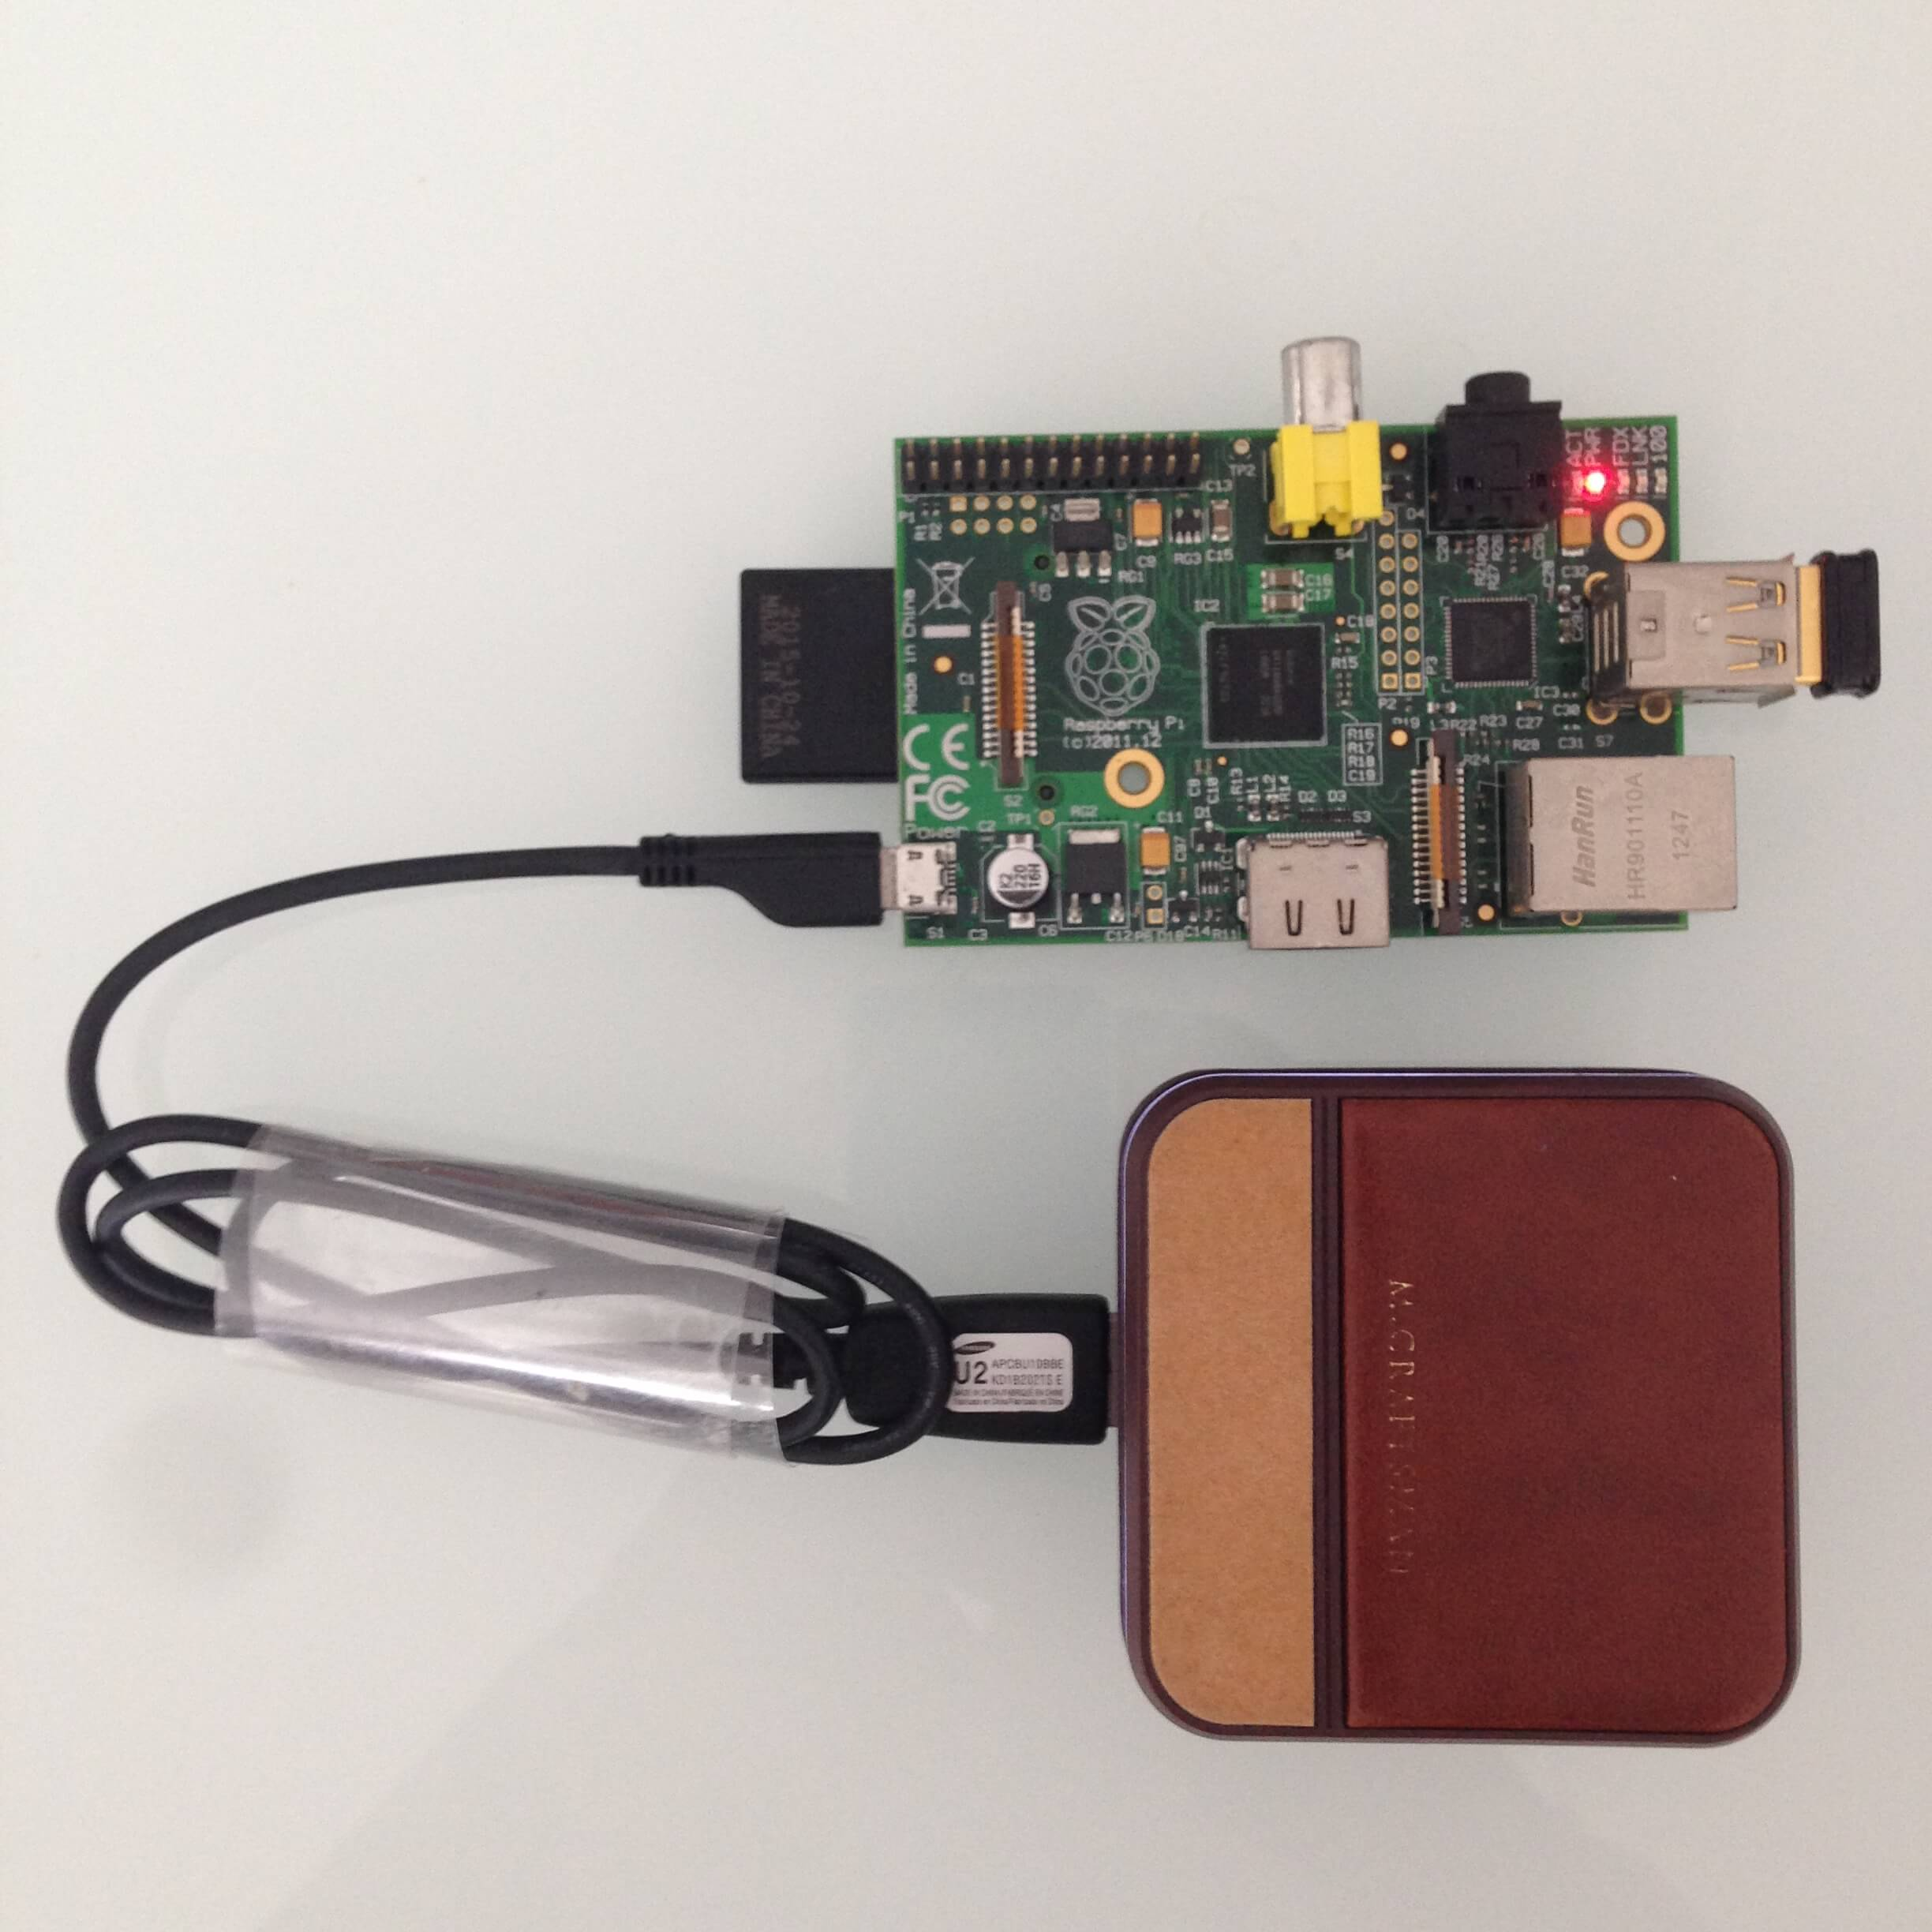 Boot-Raspberry-Pi-with-wifi-only